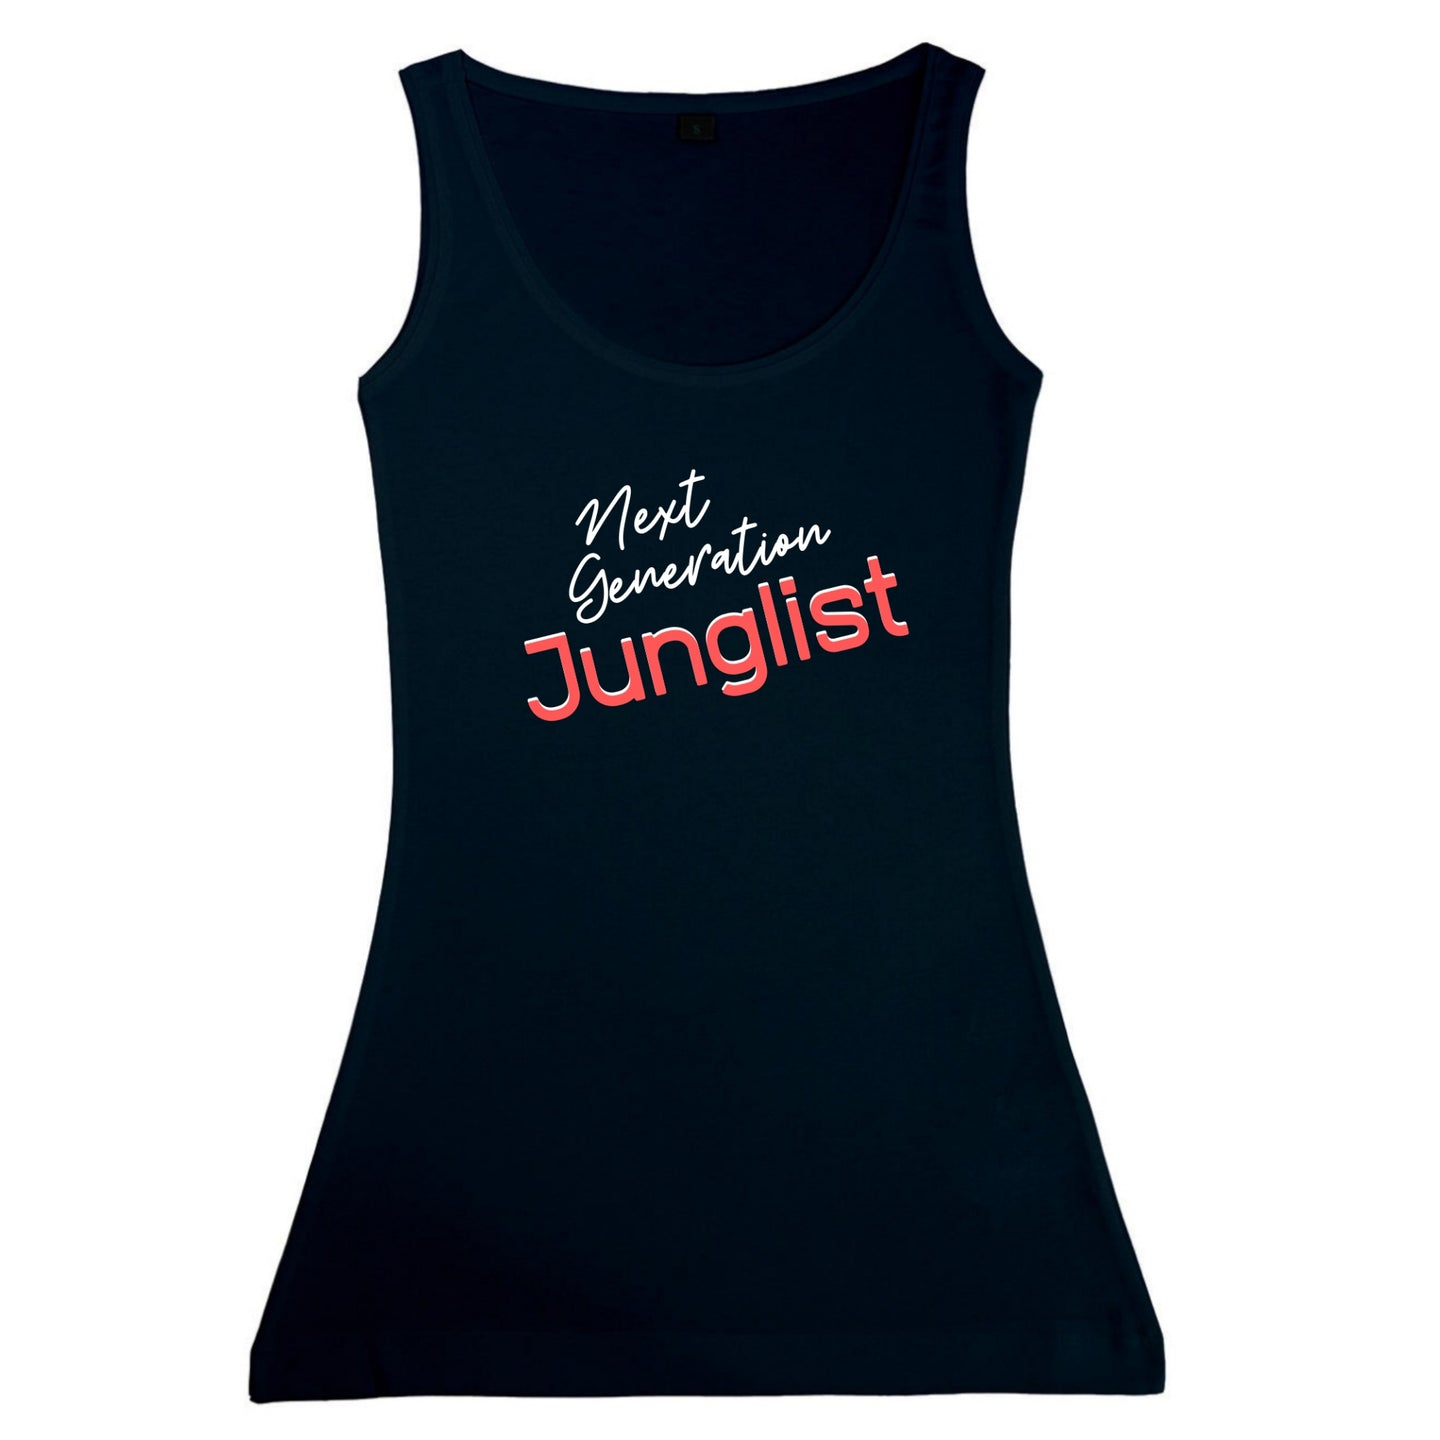 Next Generation Junglist ladies vest